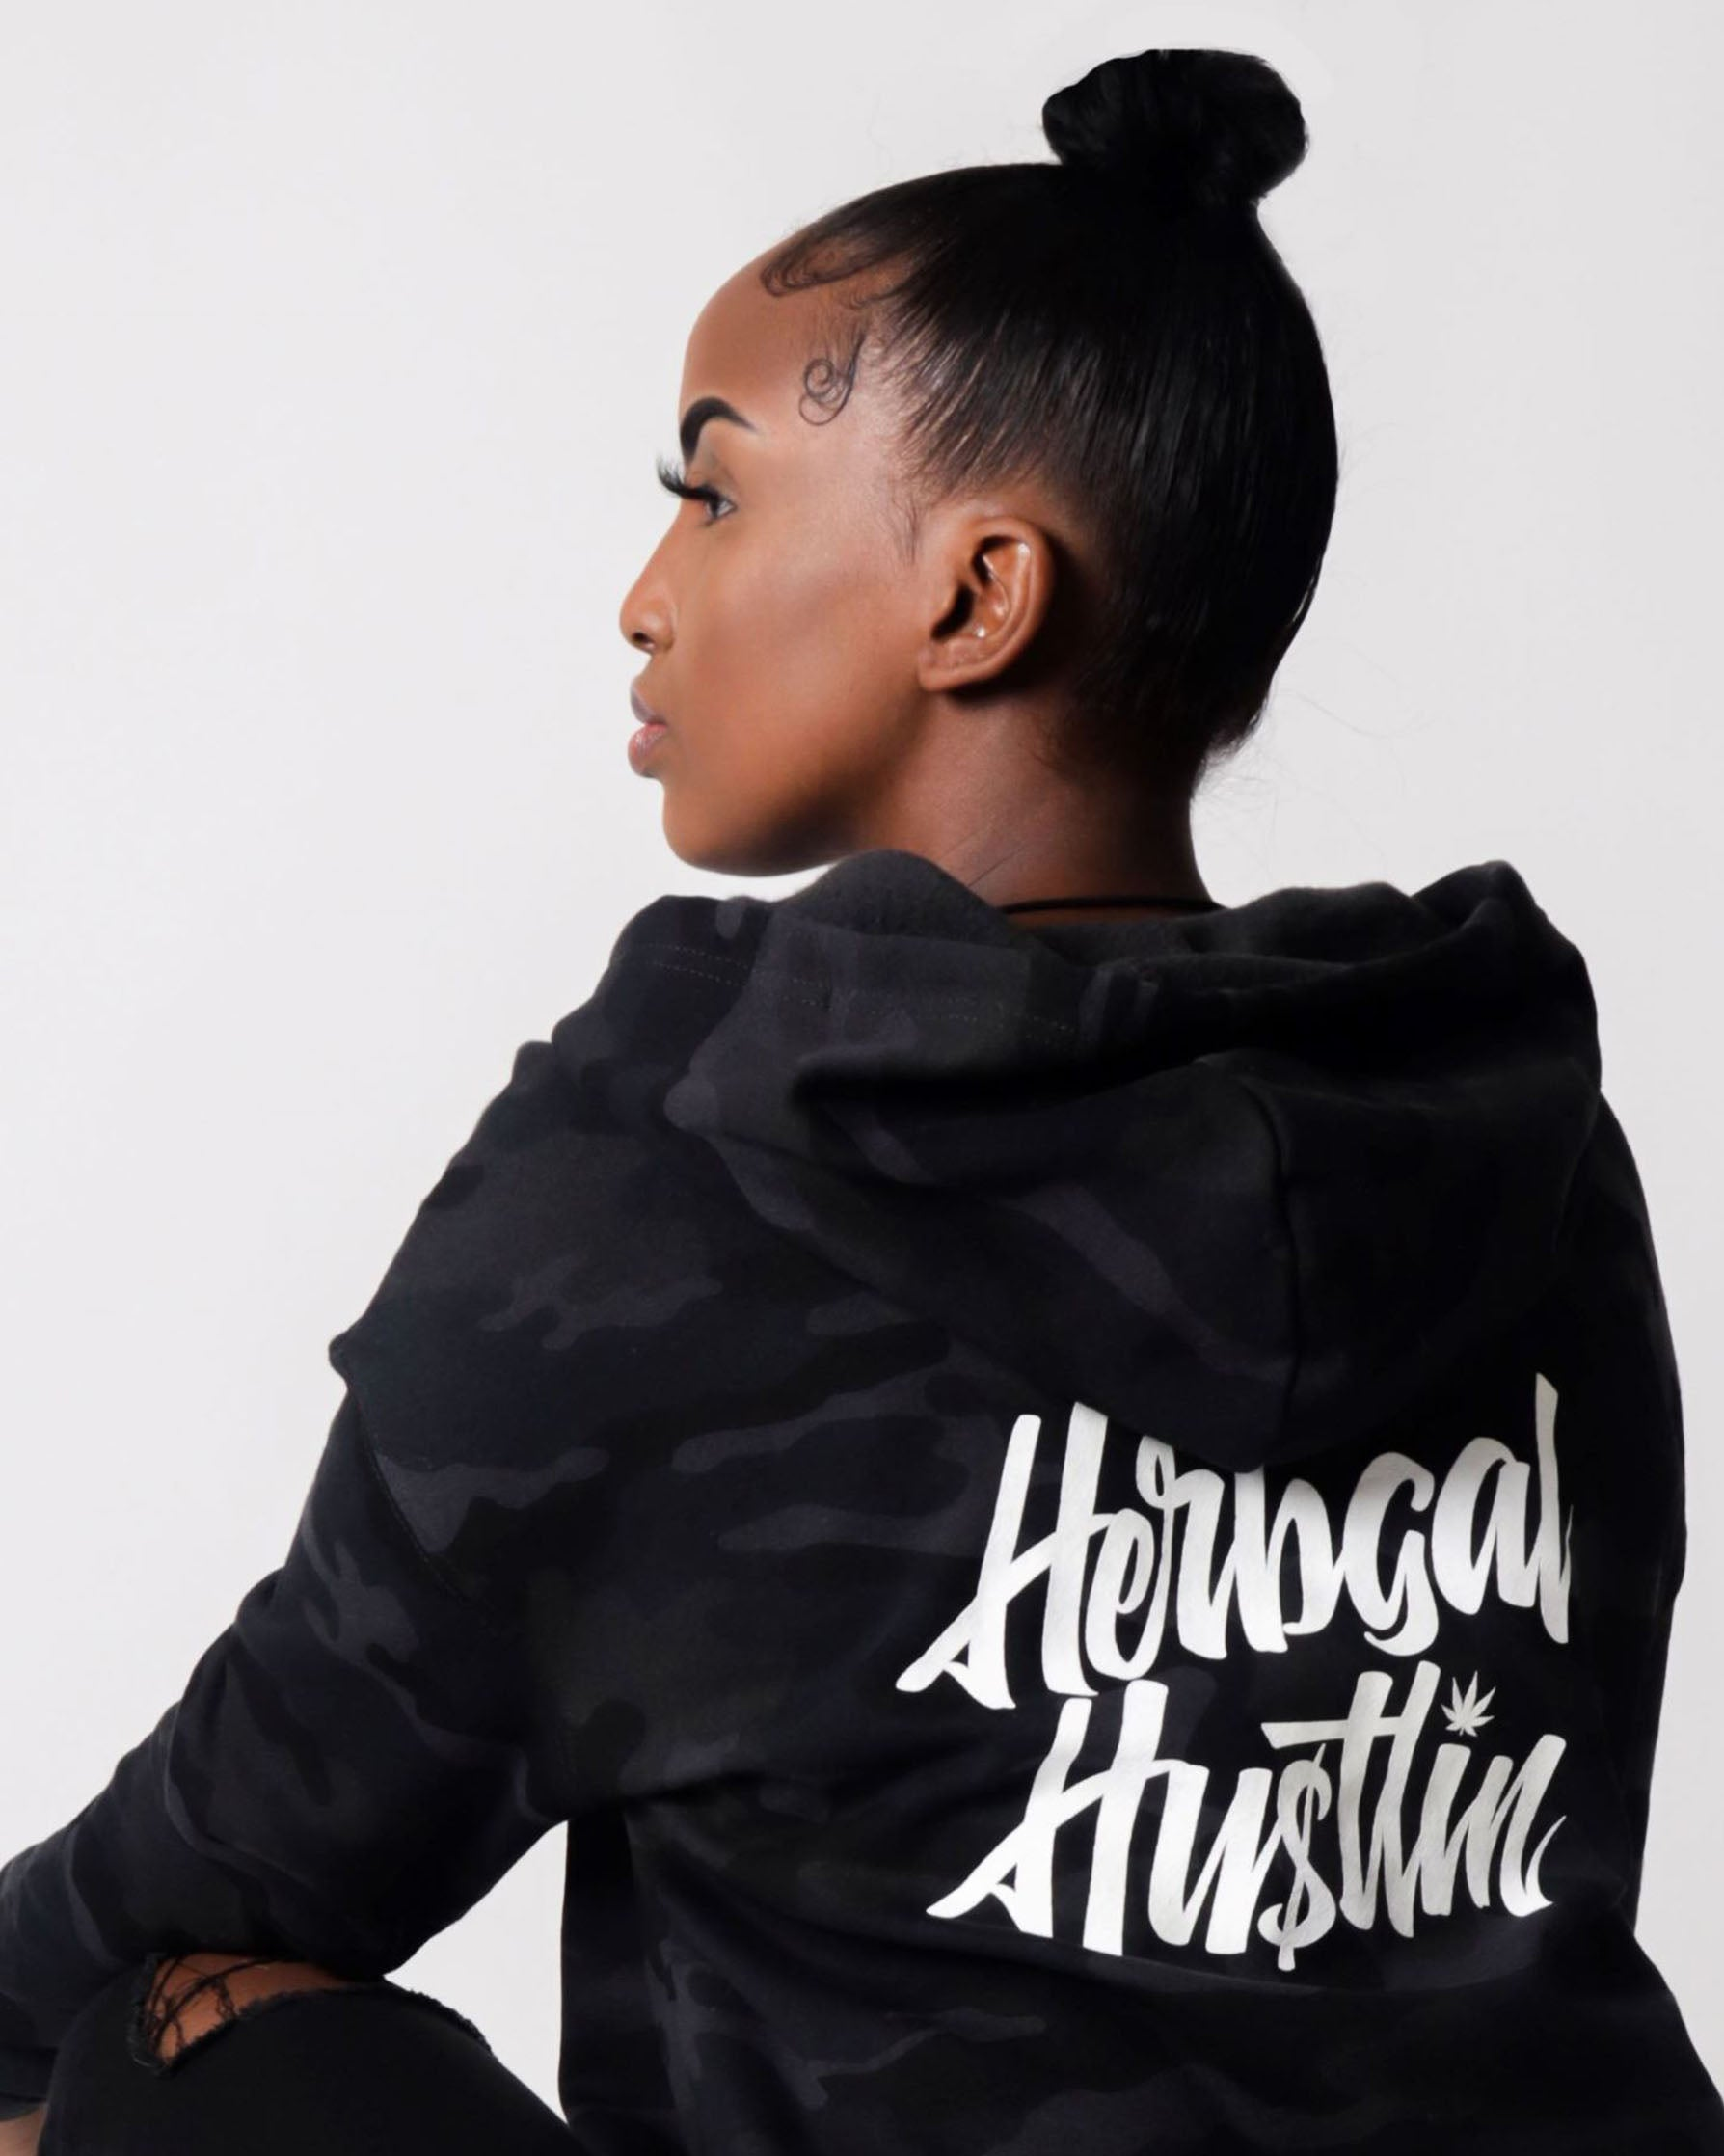 Herbgal Hustlin Script Cropped Hoodie - Black Camo/White